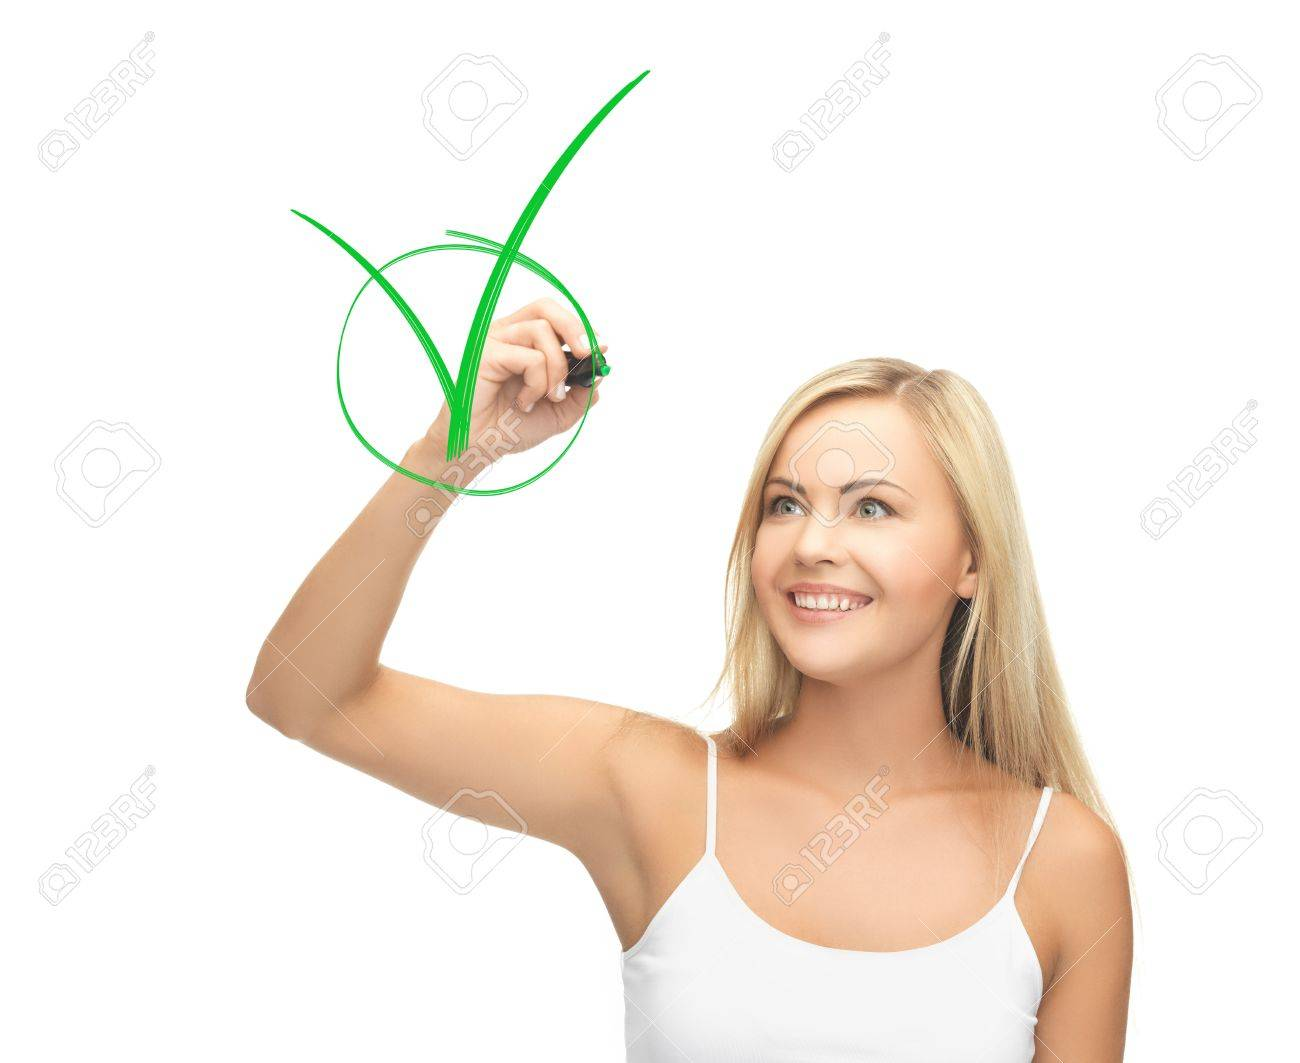 smiling woman in white shirt drawing green checkmark Stock Photo - 19944005